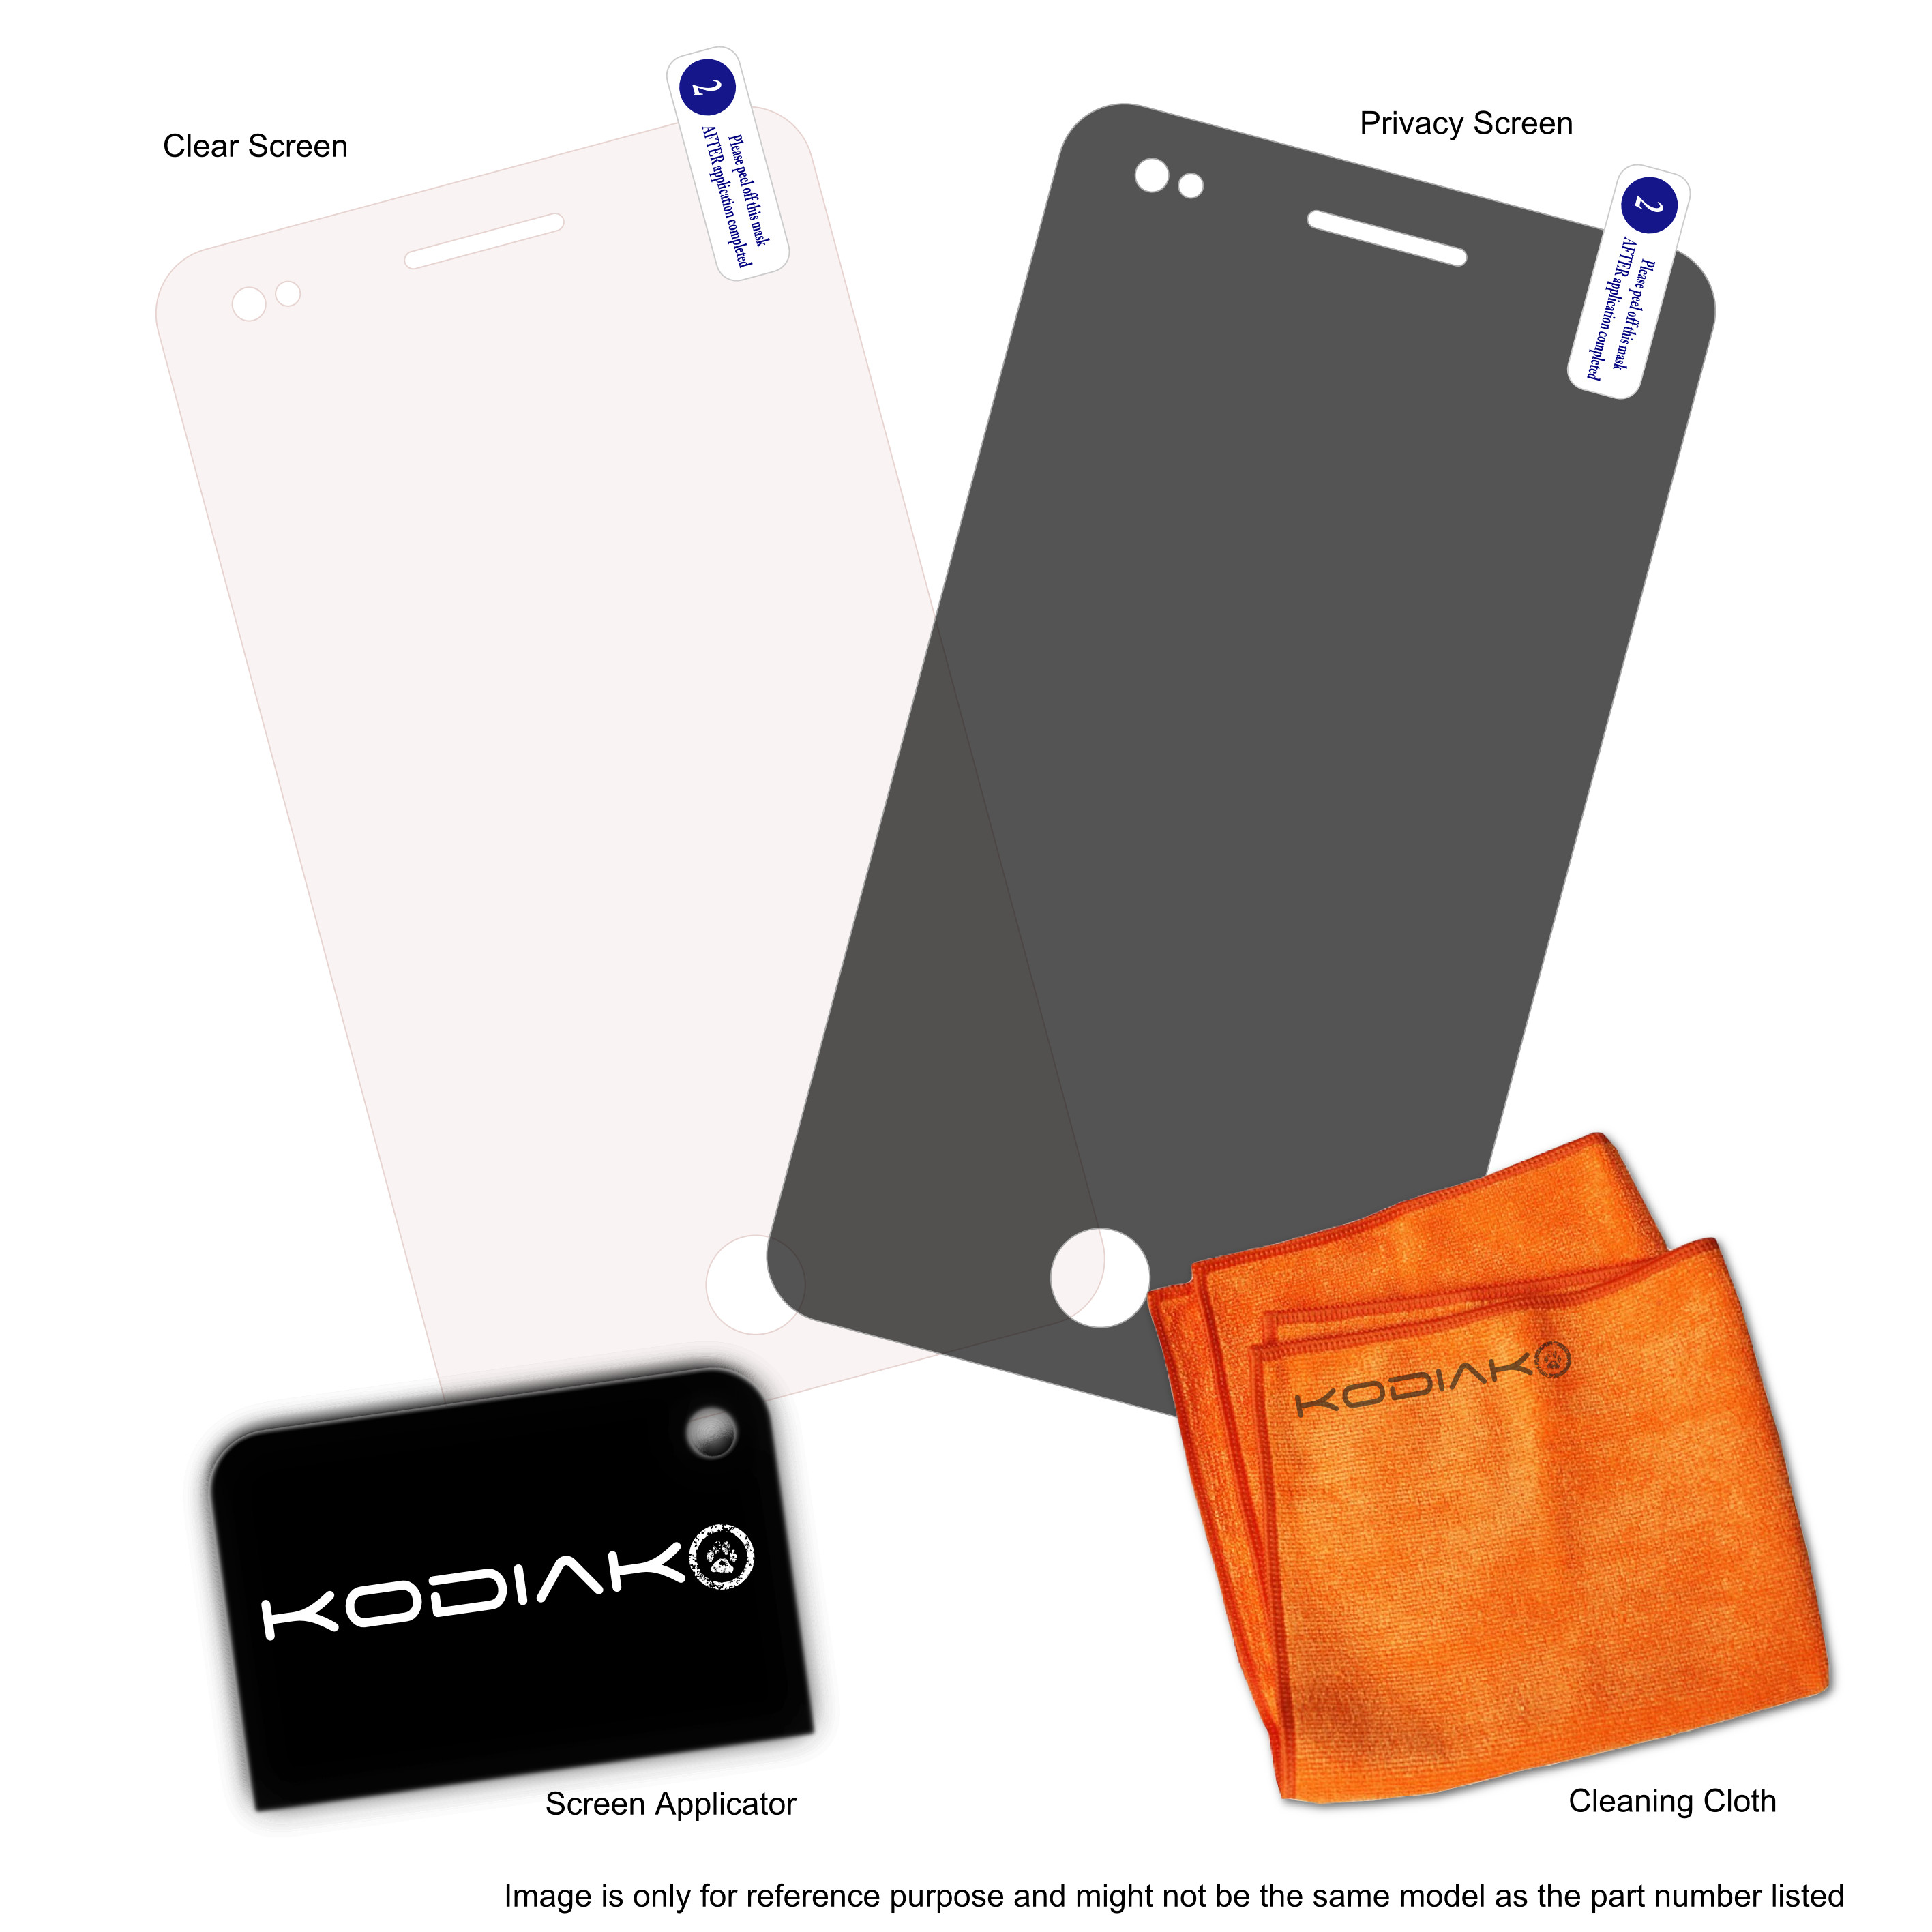 Original Kodiak Screen Protector Samsung C3222 Punch iProtect 2-Package (Clear + Privacy)